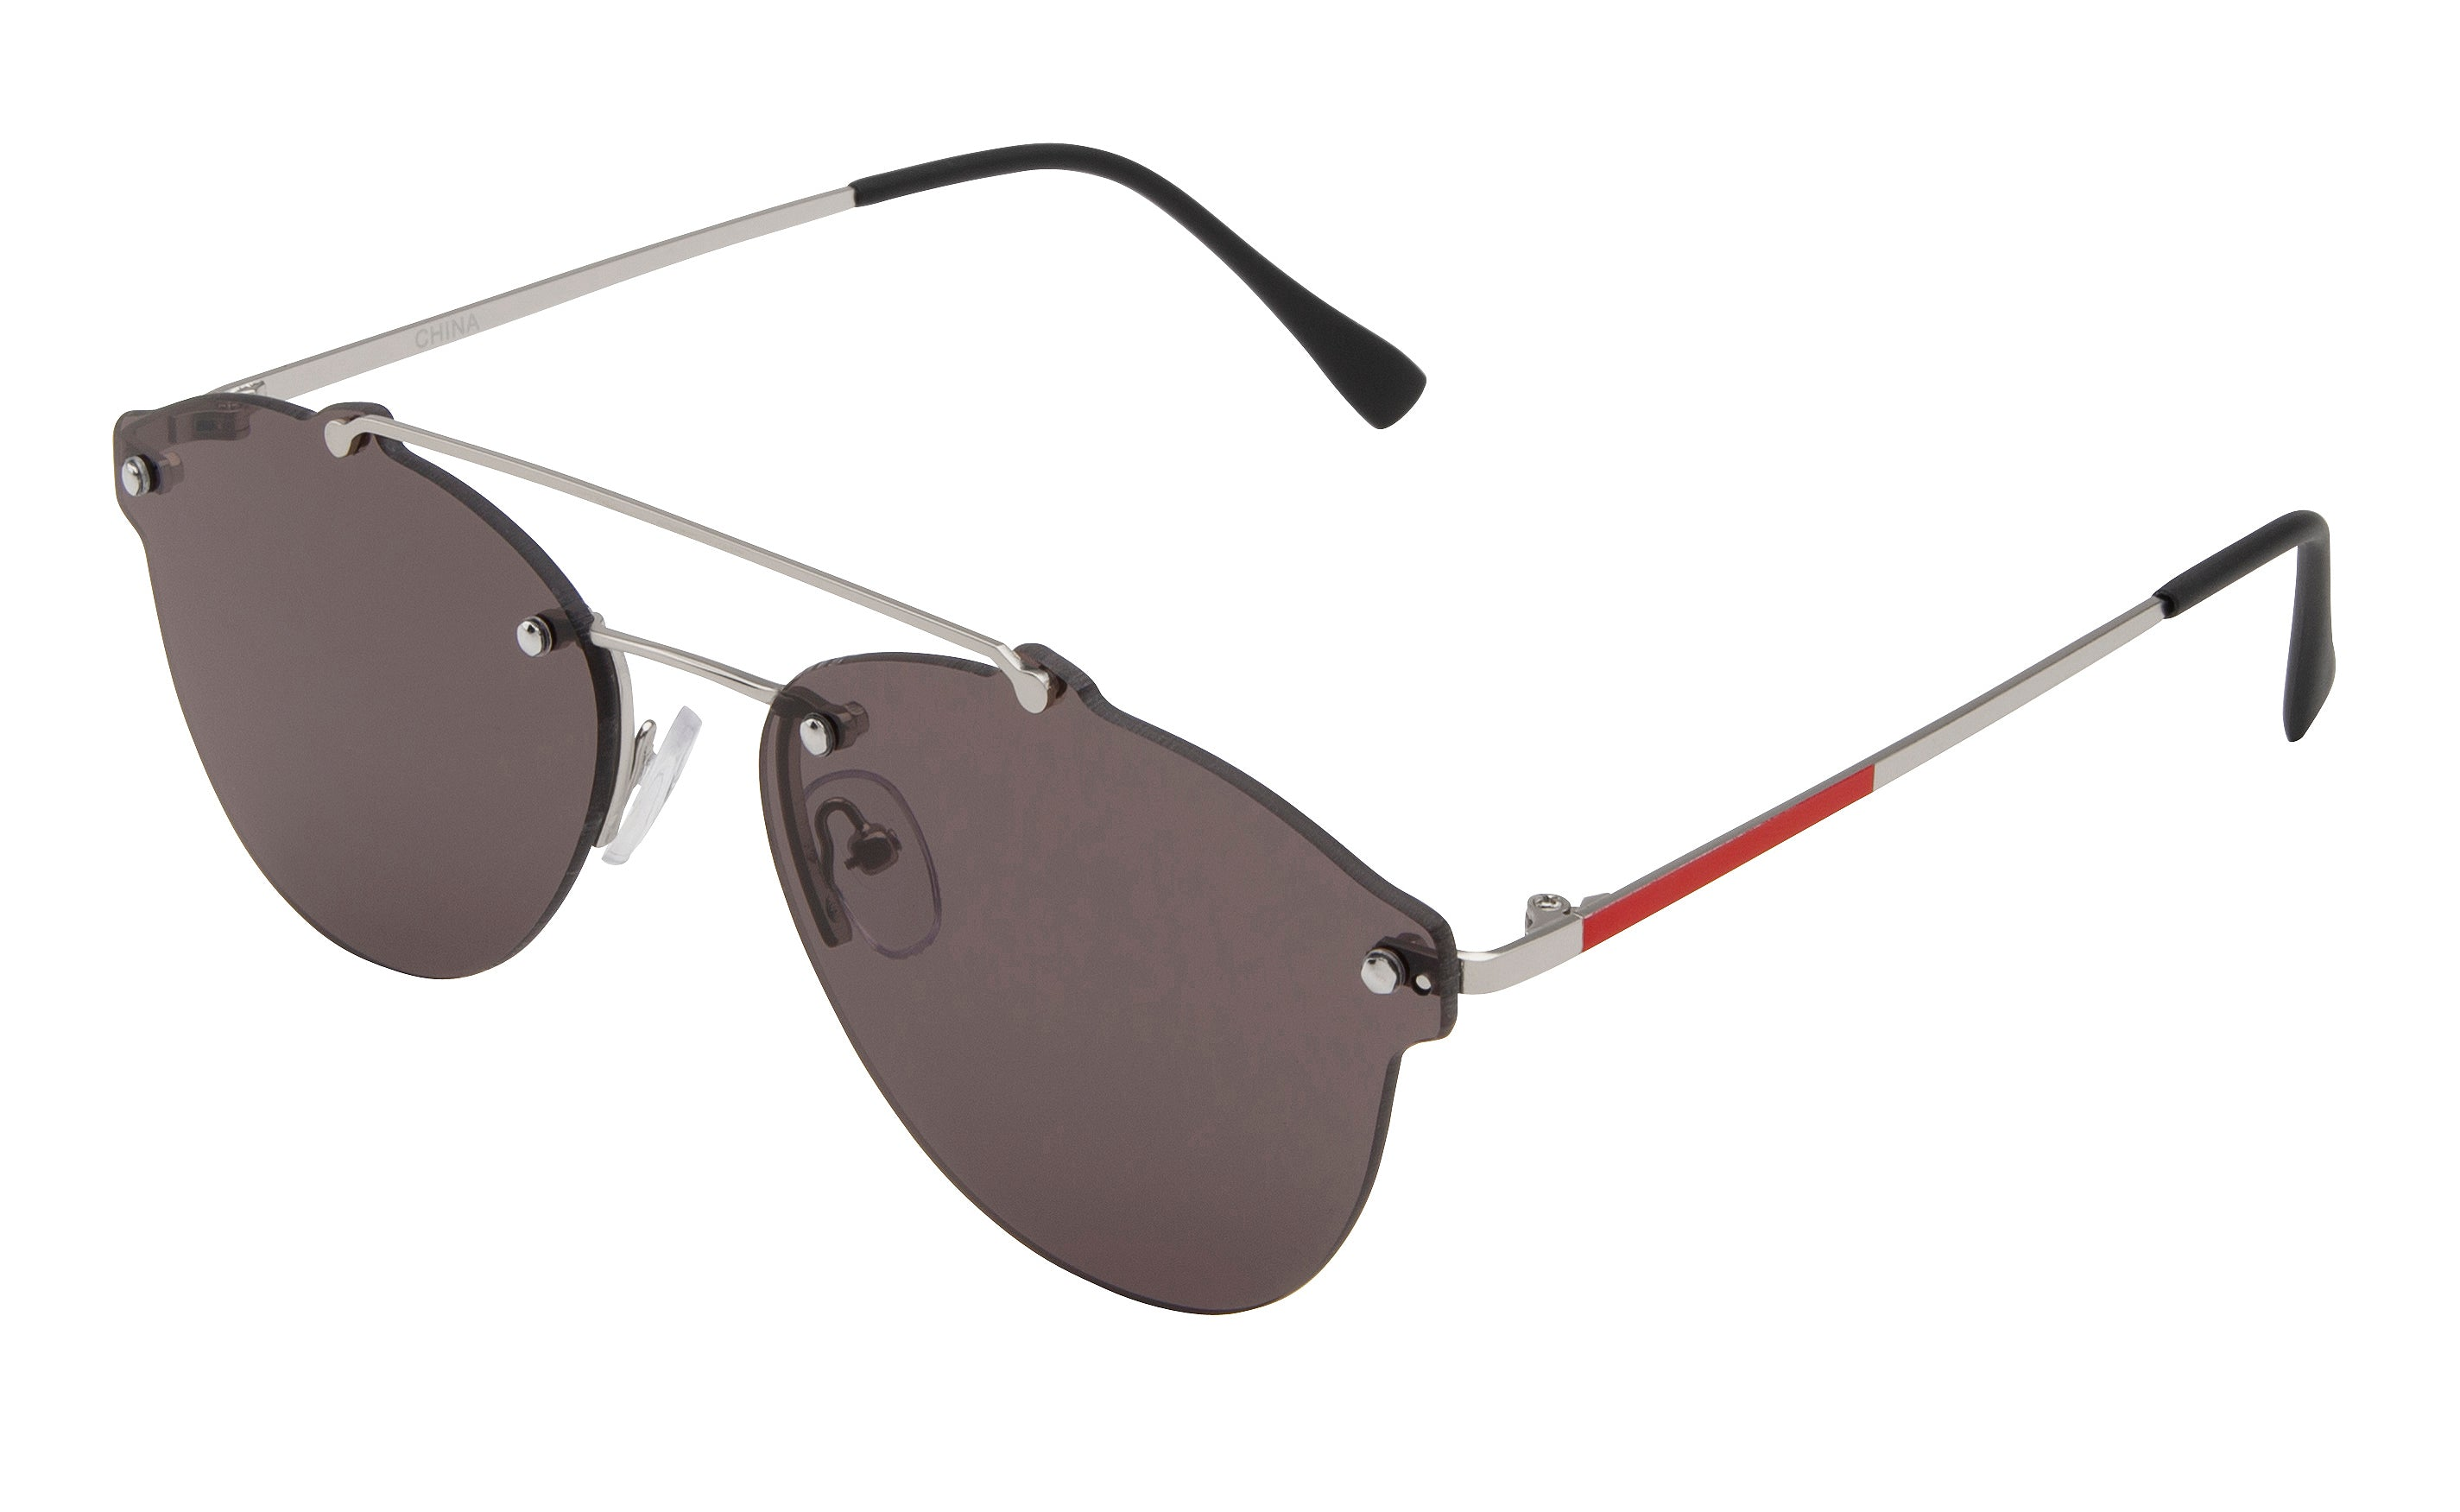 PD20 - Celebrity Eyewear Sunglasses